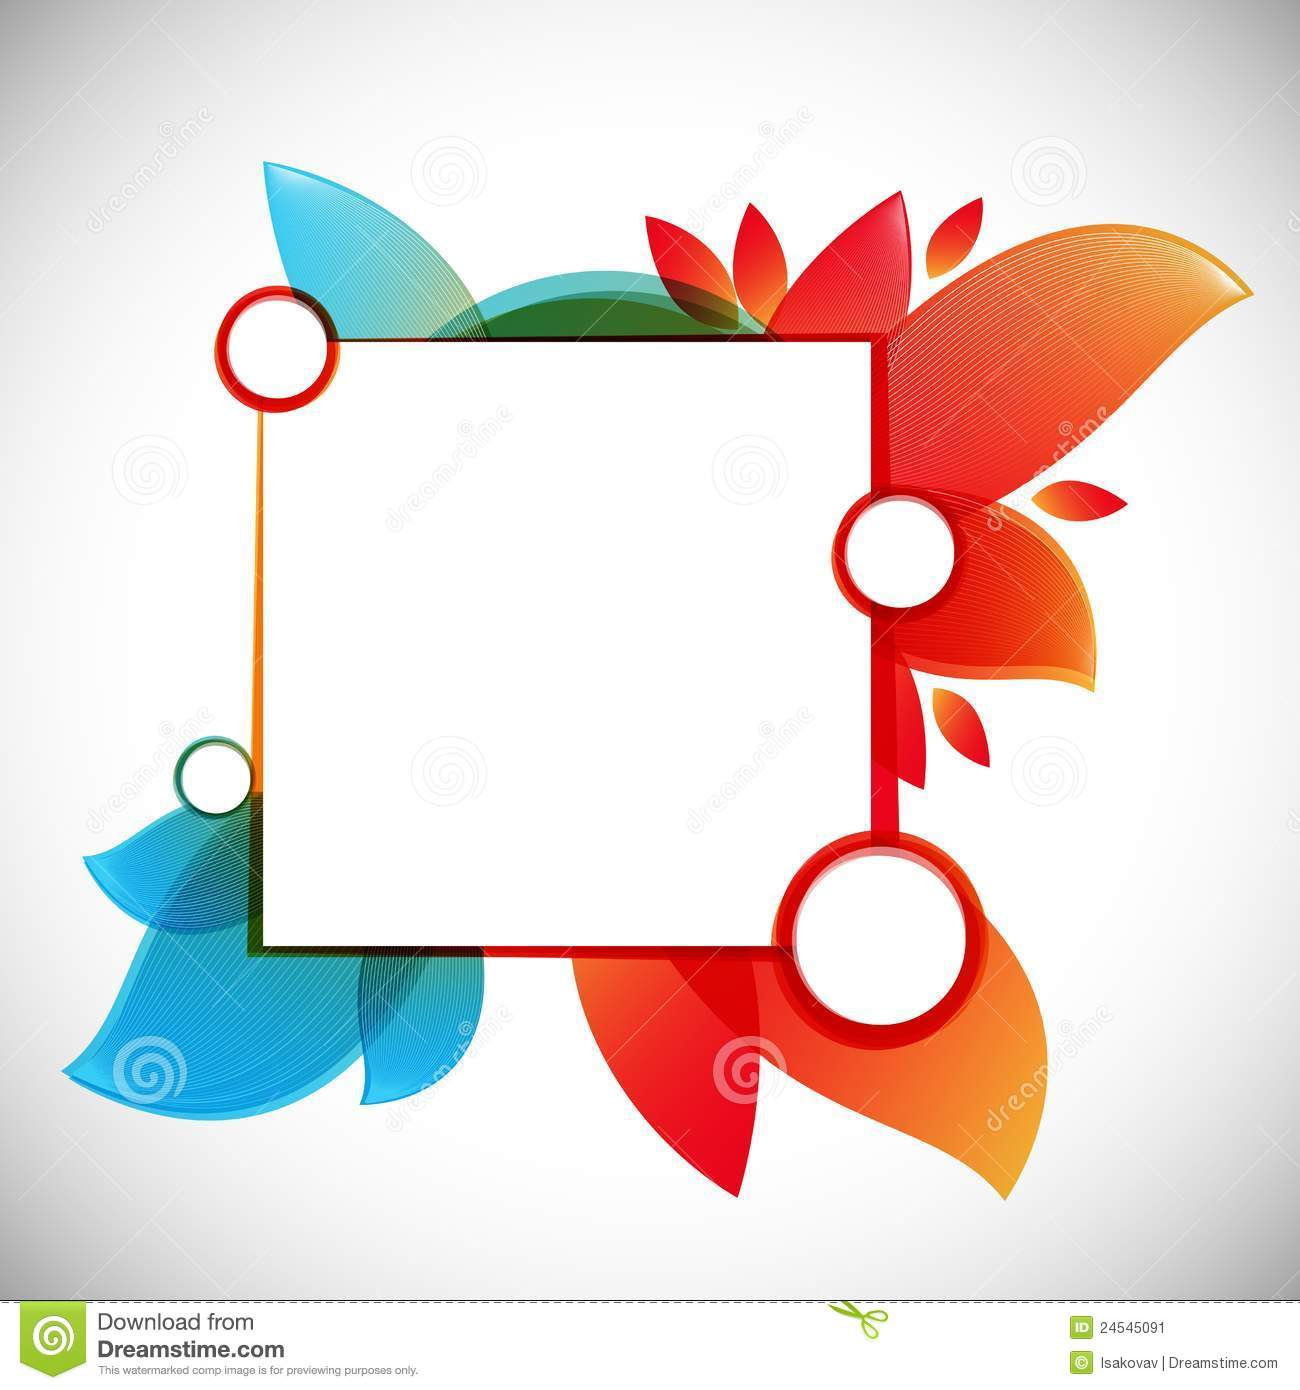 Jooker Lai Lai Lai Audio Theem Downlod: Color Abstract Vector Background / Text Frame Stock Image